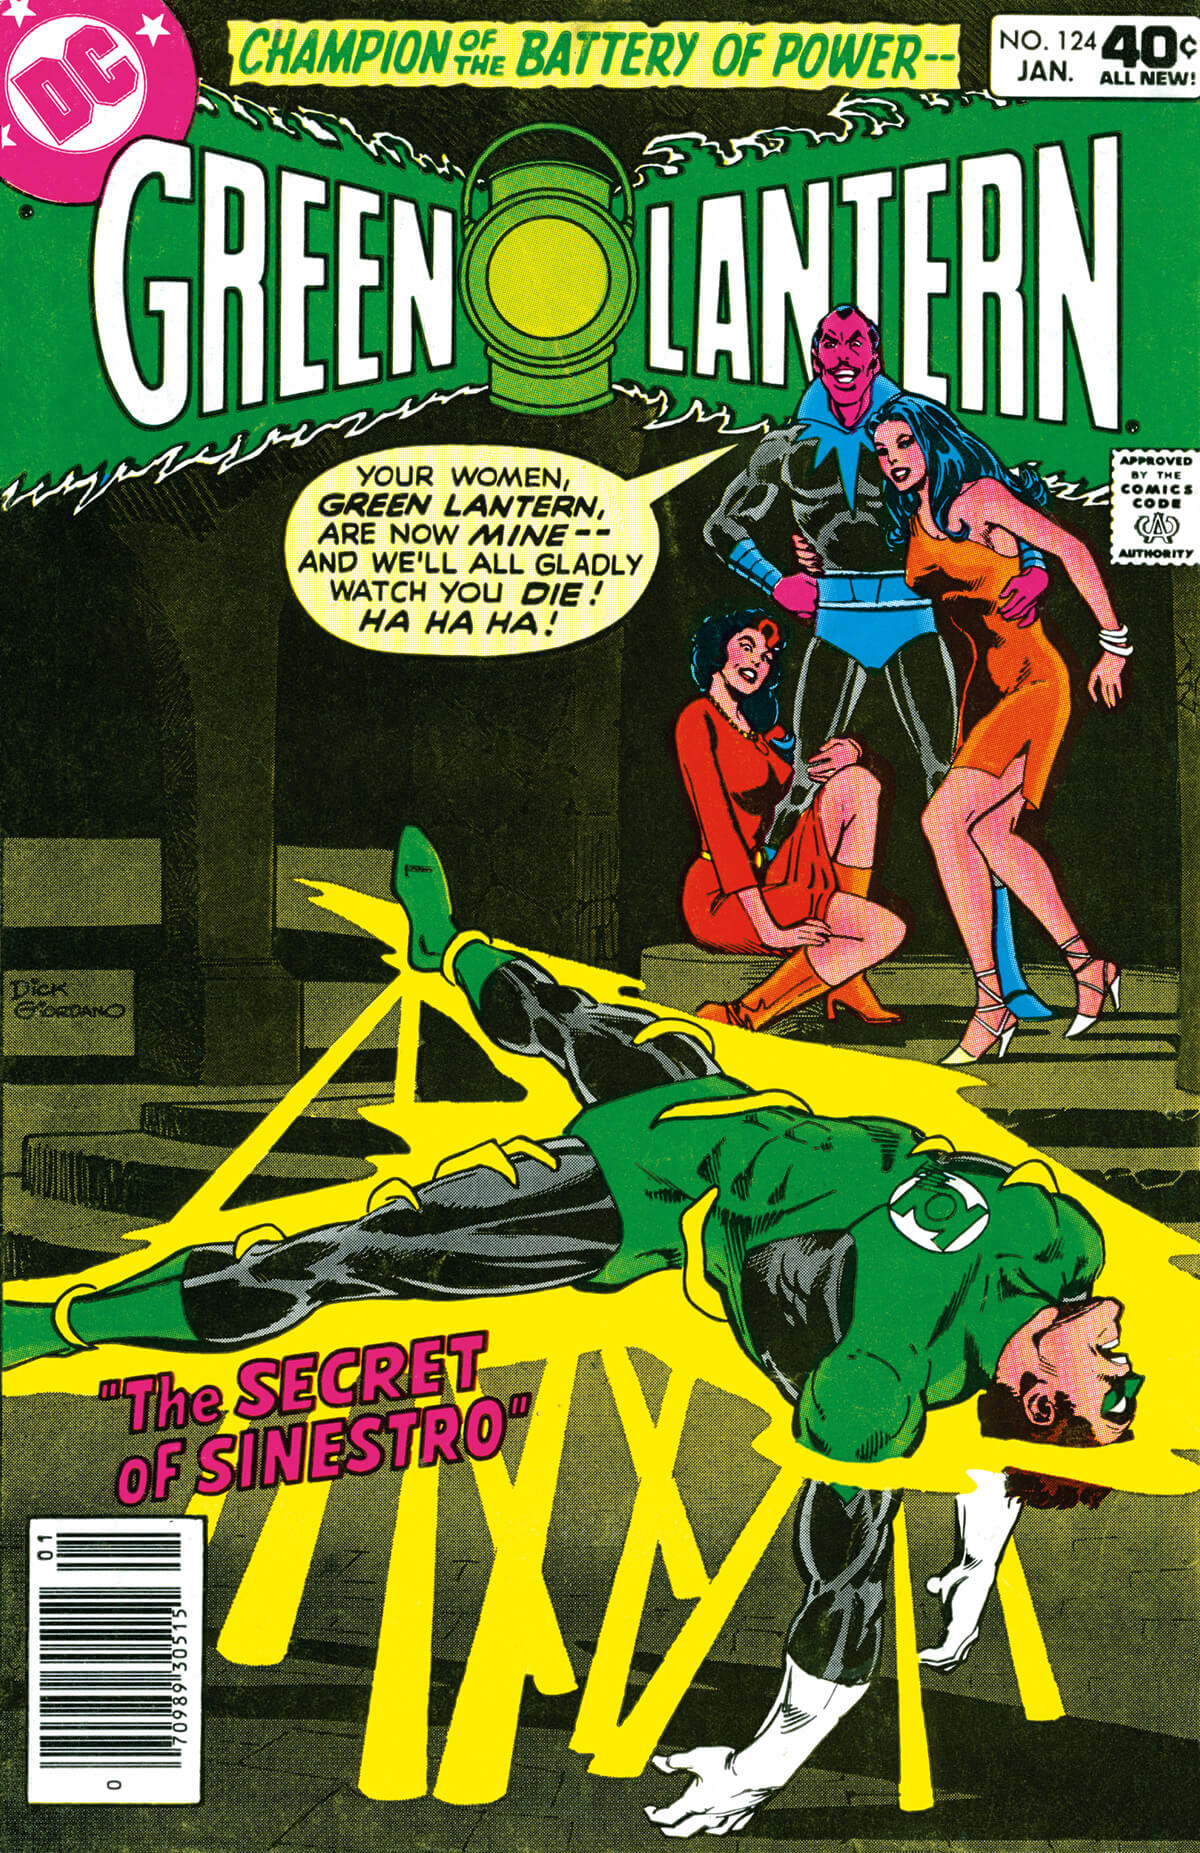 Green Lantern 124 Cover by Dick Giordano